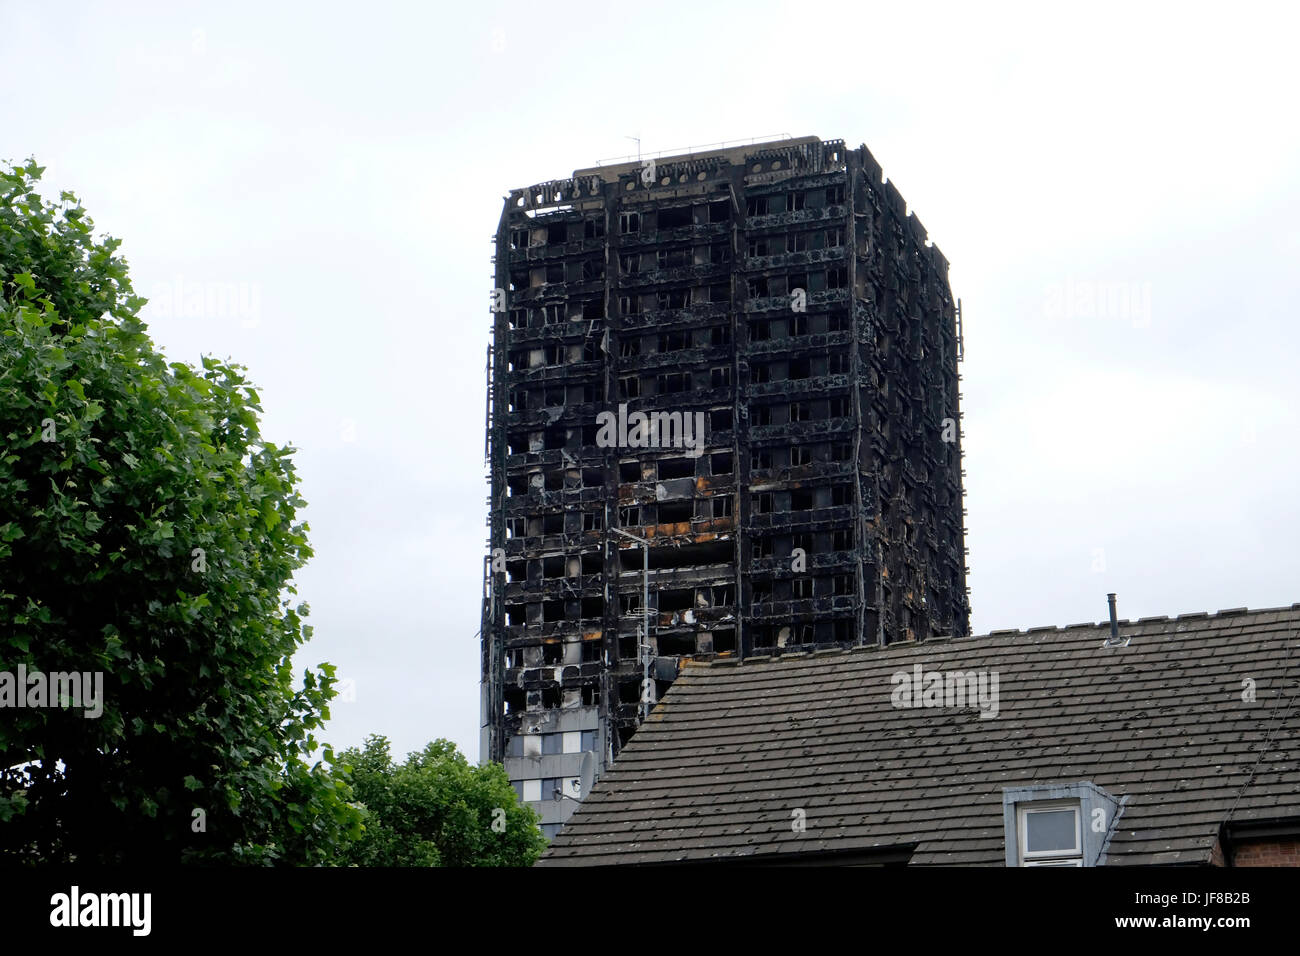 A close-up view of Grenfell Tower after the fire - Stock Image